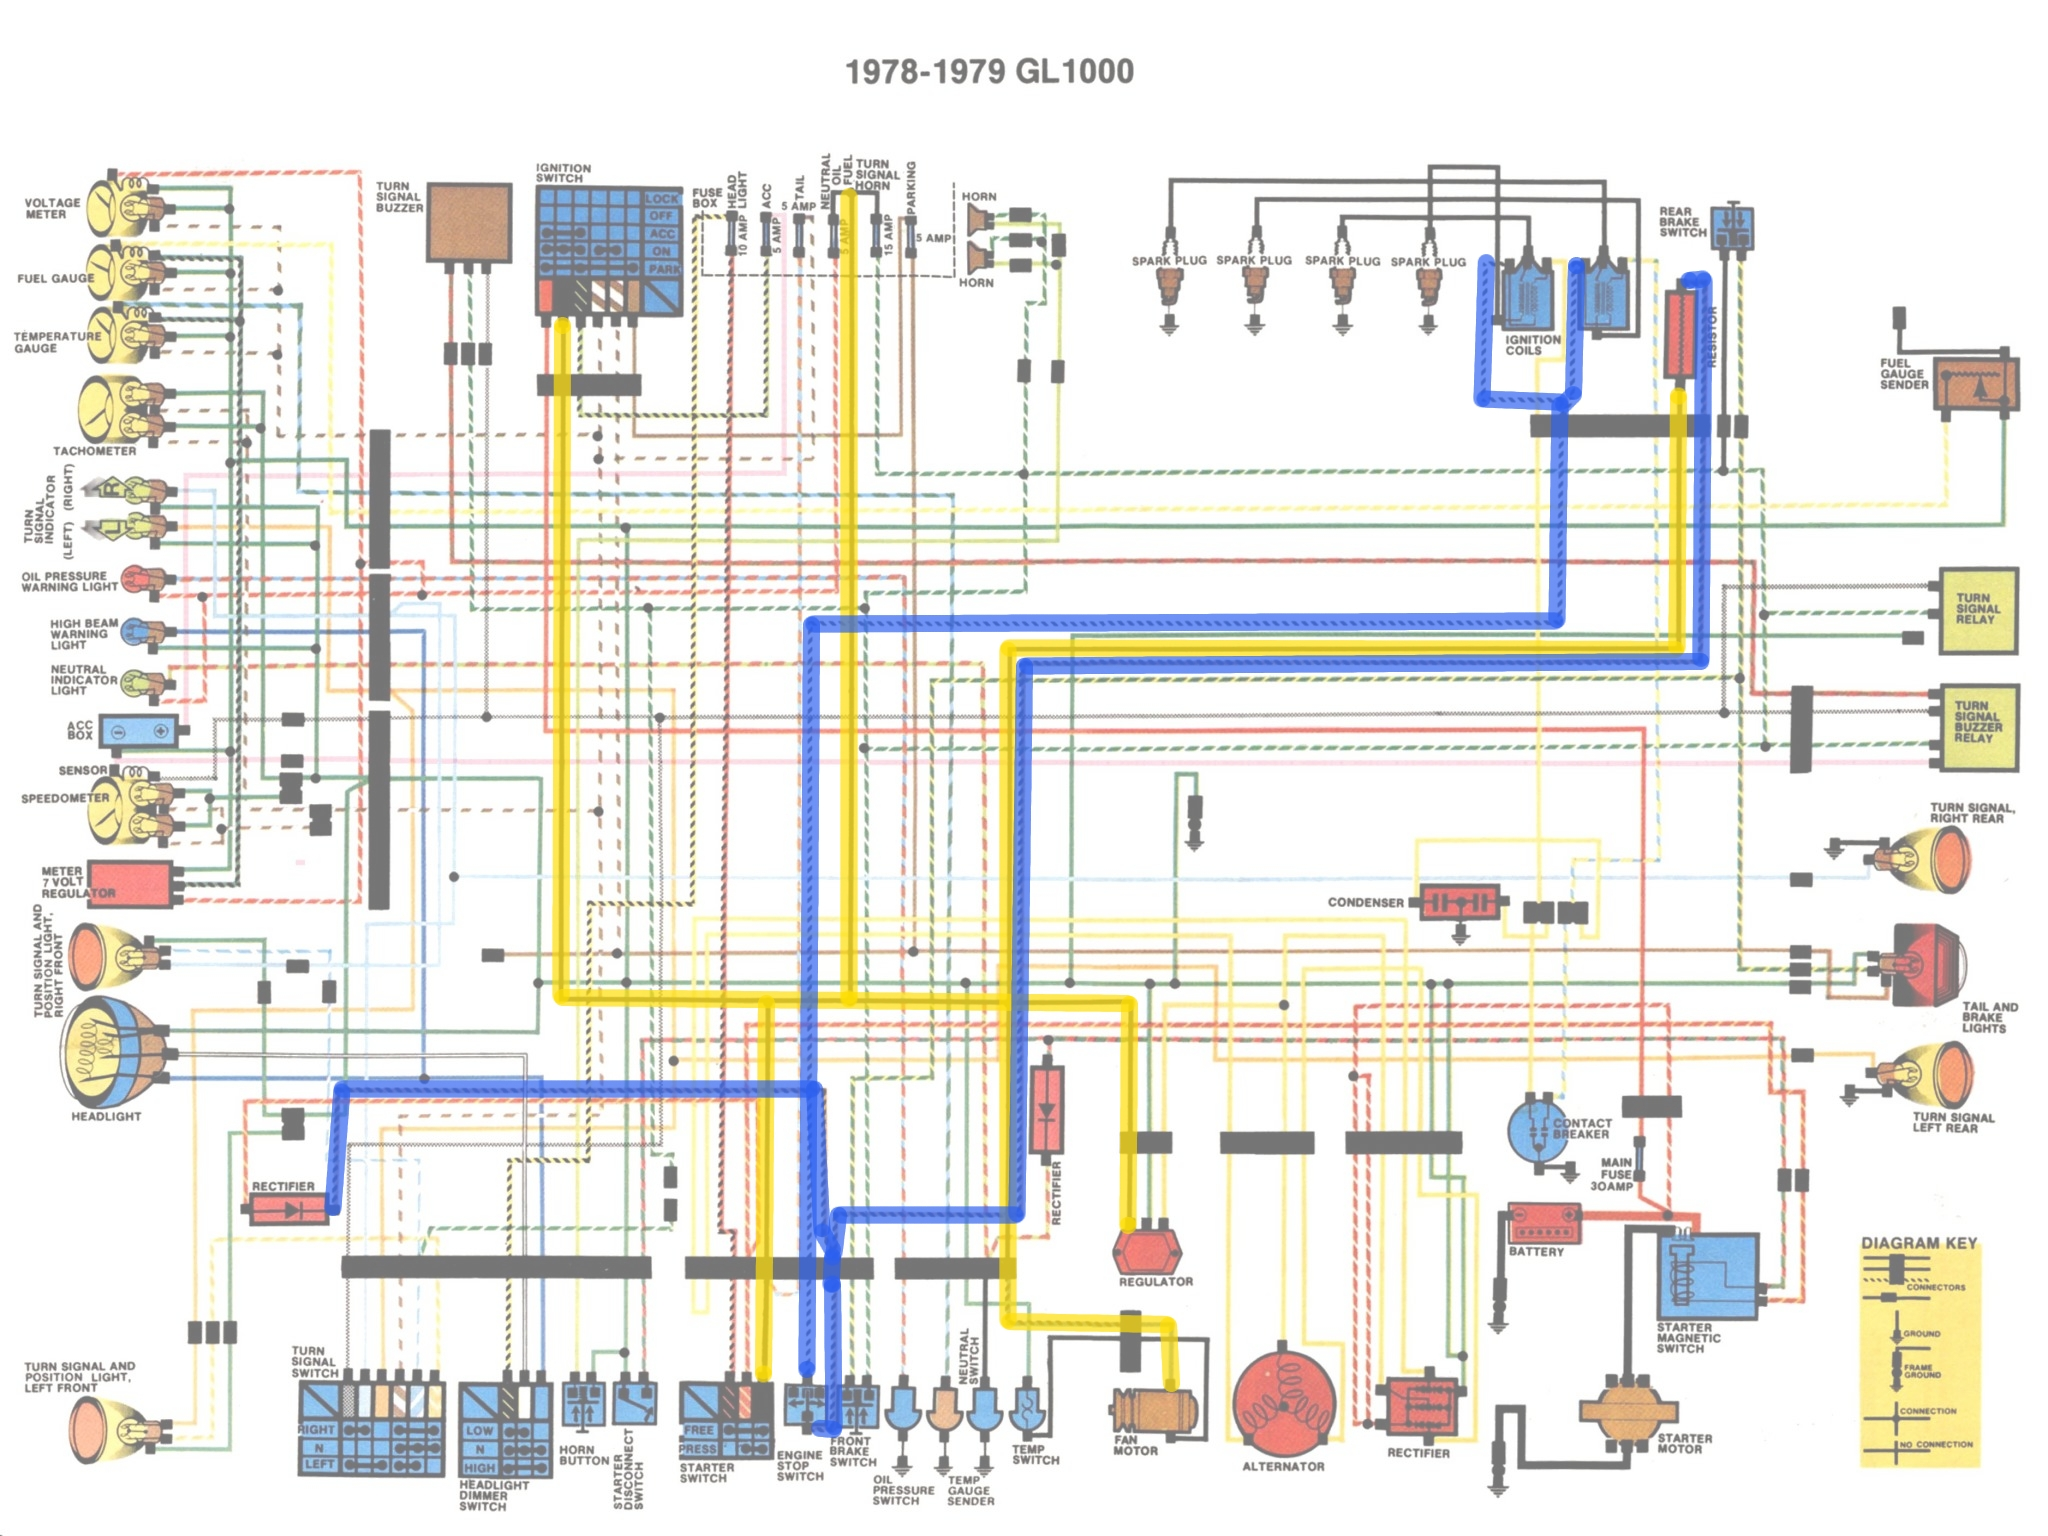 Gl1800 Wiring Diagram - Touch Wiring Diagrams on honda wiring diagram, fjr wiring diagram, norton wiring diagram, motorcycle wiring diagram, renegade wiring diagram, crf wiring diagram, crf450r wiring diagram, snowmobile wiring diagram, st wiring diagram, cmx250c wiring diagram, service wiring diagram, phantom wiring diagram, gl1500 wiring diagram, accessories wiring diagram, gl1100 wiring diagram, avalon wiring diagram, sci-fi wiring diagram, cr wiring diagram, gl1200 wiring diagram, cb1100 wiring diagram,